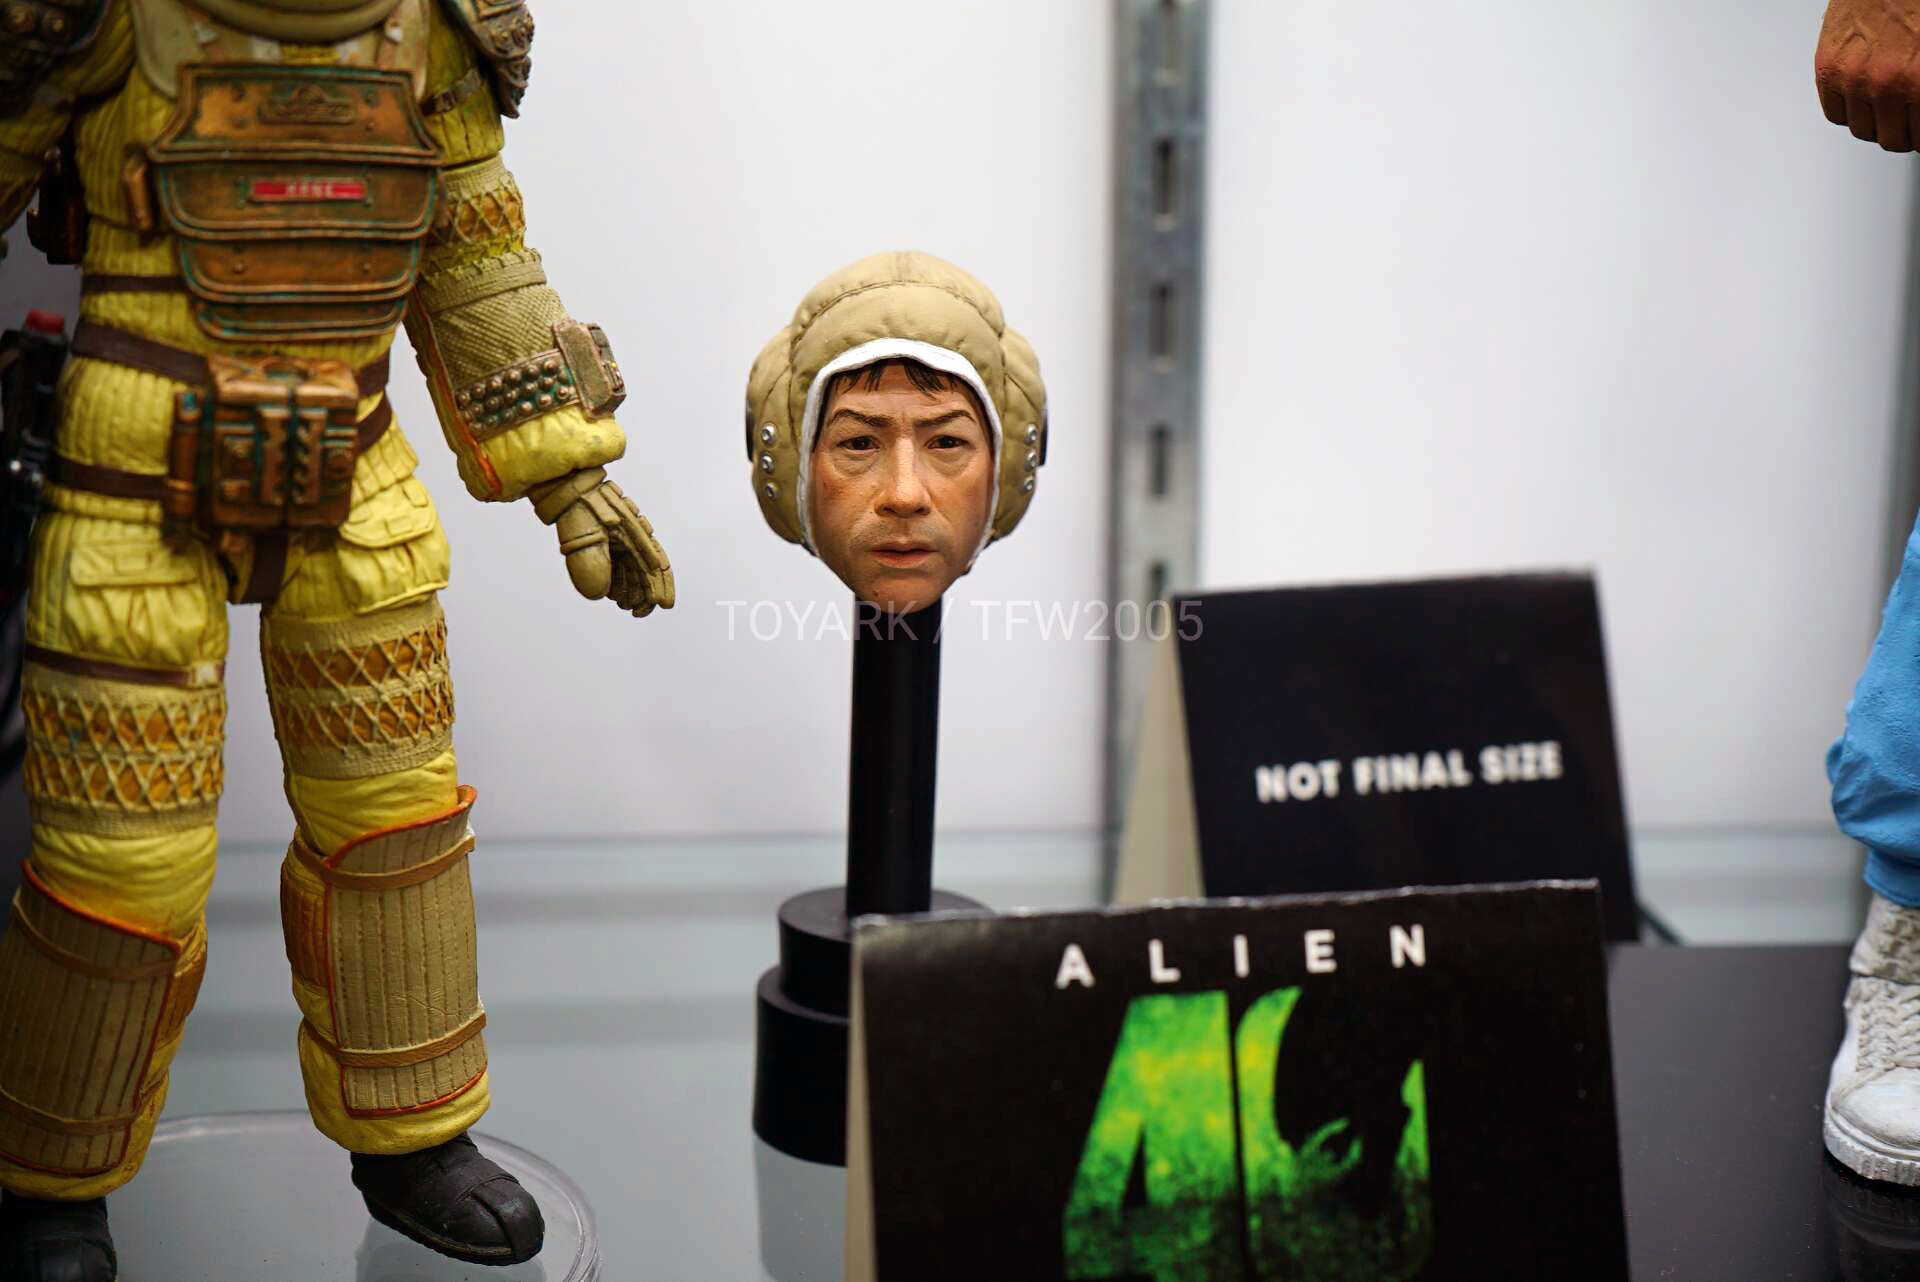 Toy-Fair-2020-NECA-Alien-and-Predator-006.jpg